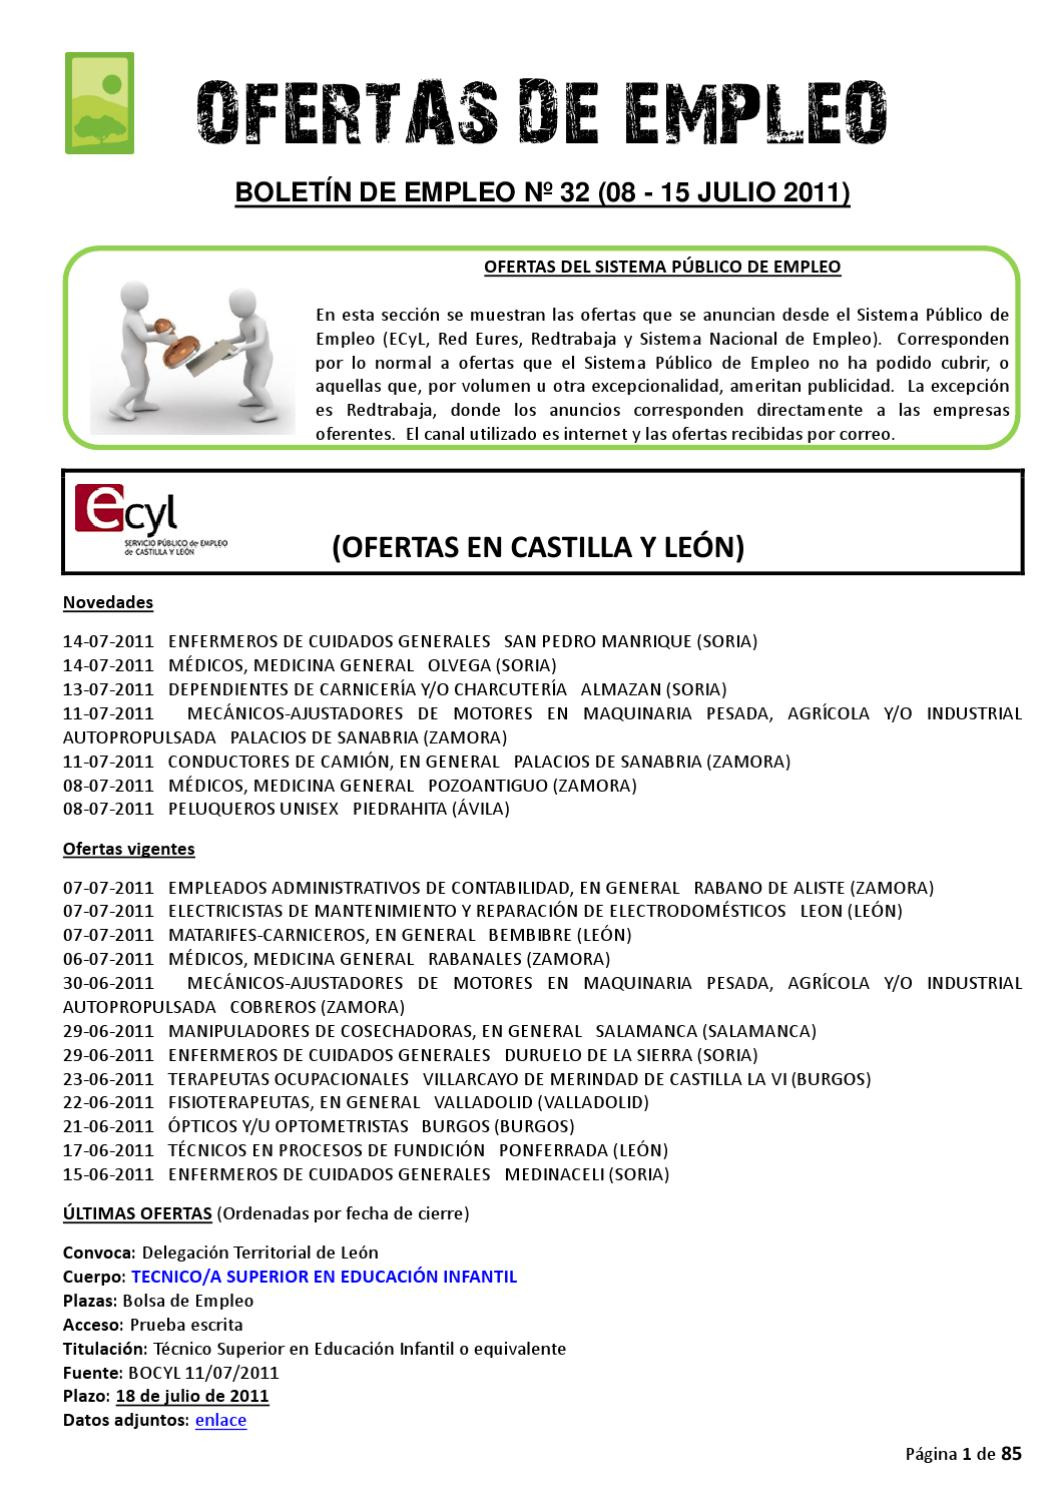 BOLETIN EMPLEO Nº 32 (15/07/2011) by AEDL MIC - issuu